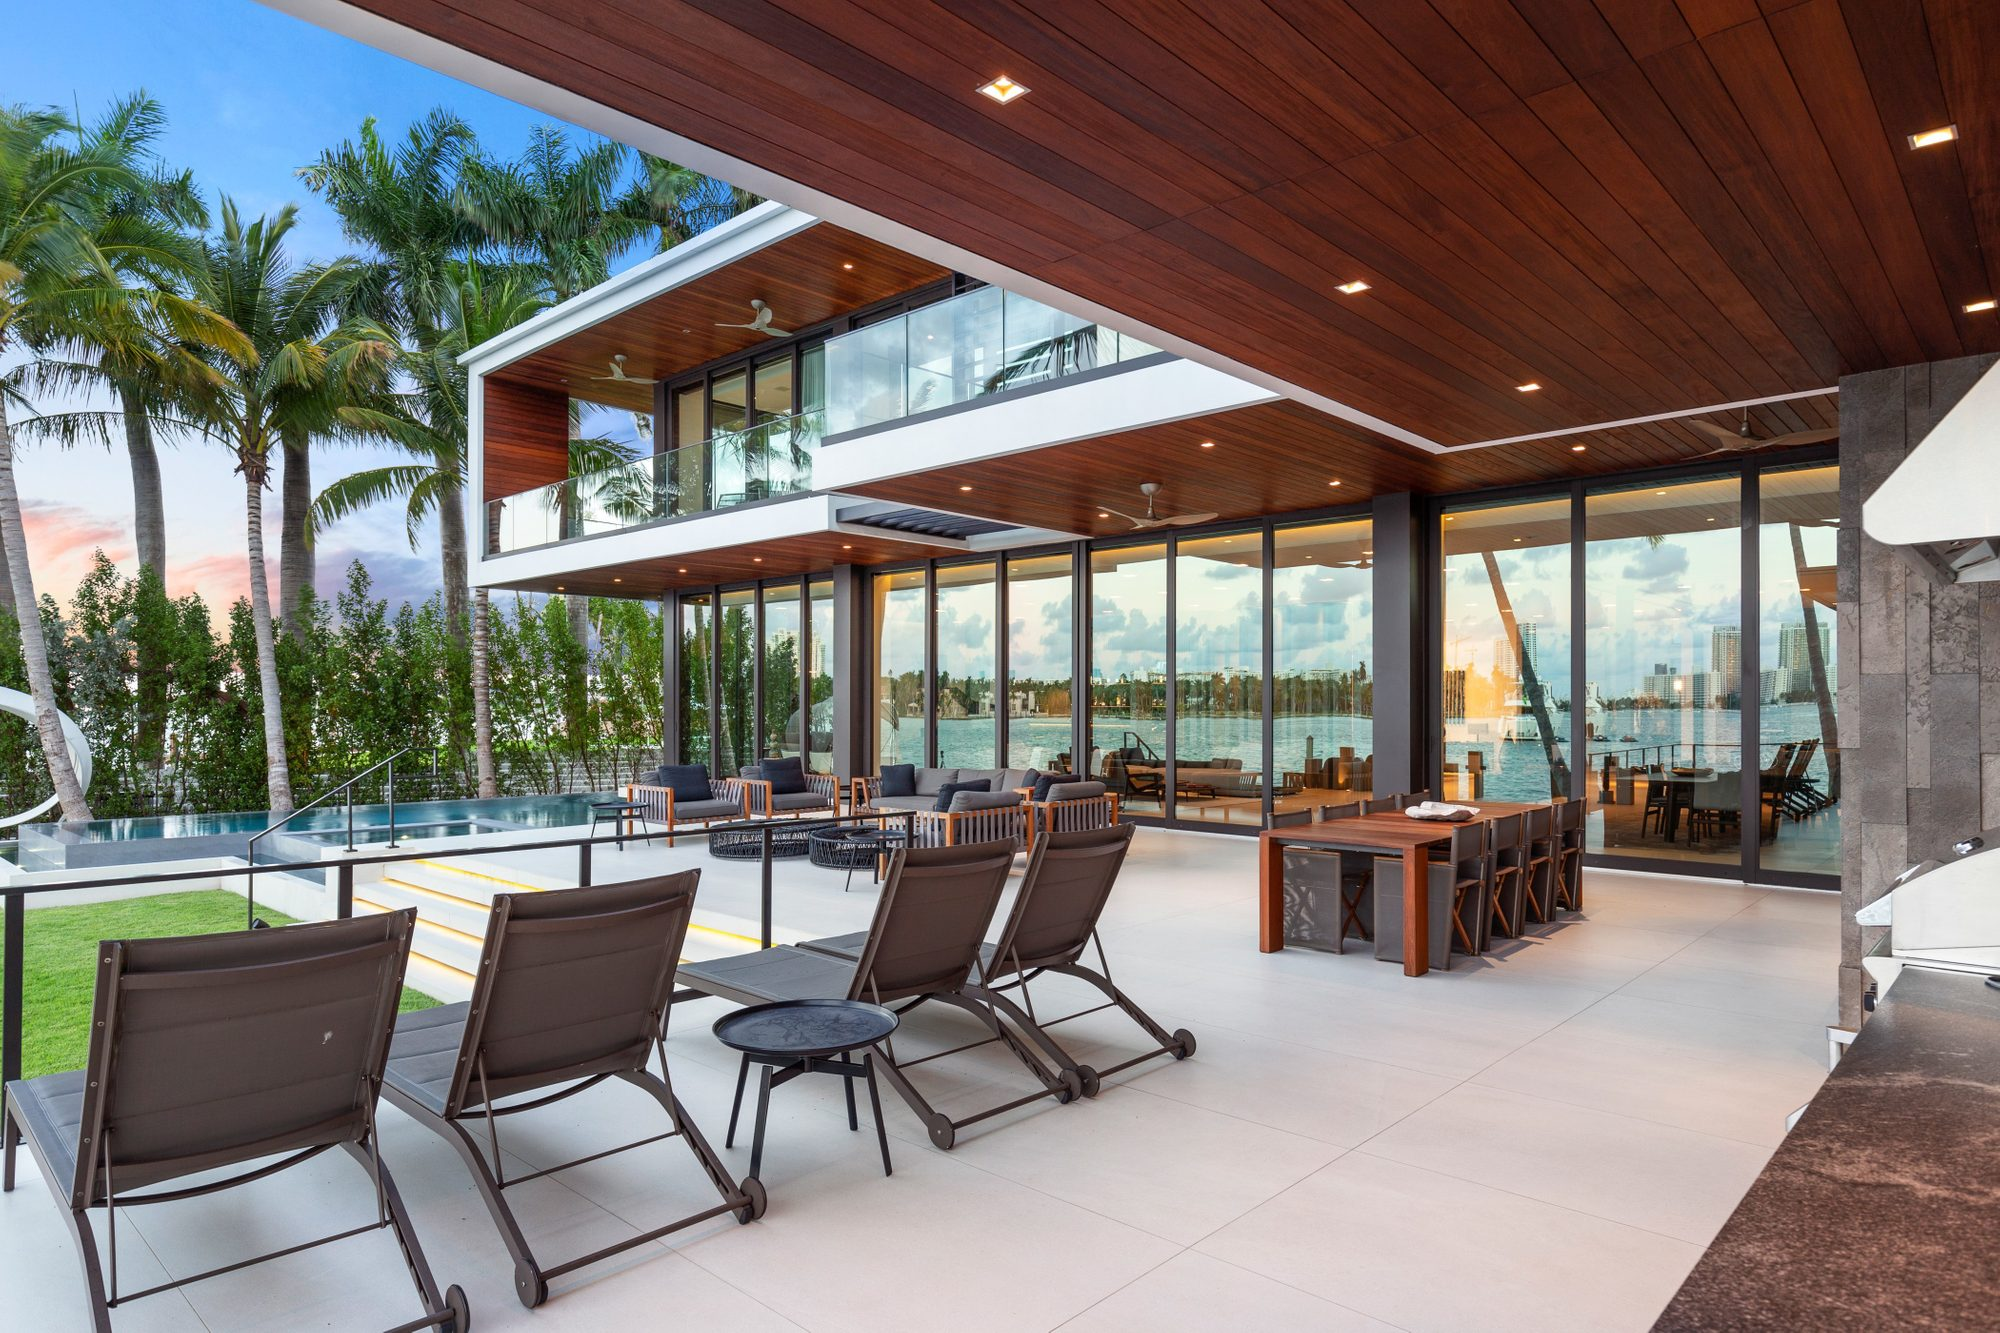 Matching gray and wood modern outdoor furniture sets sectioned off into 3 distinct areas. Suntanning, lounging and dining.